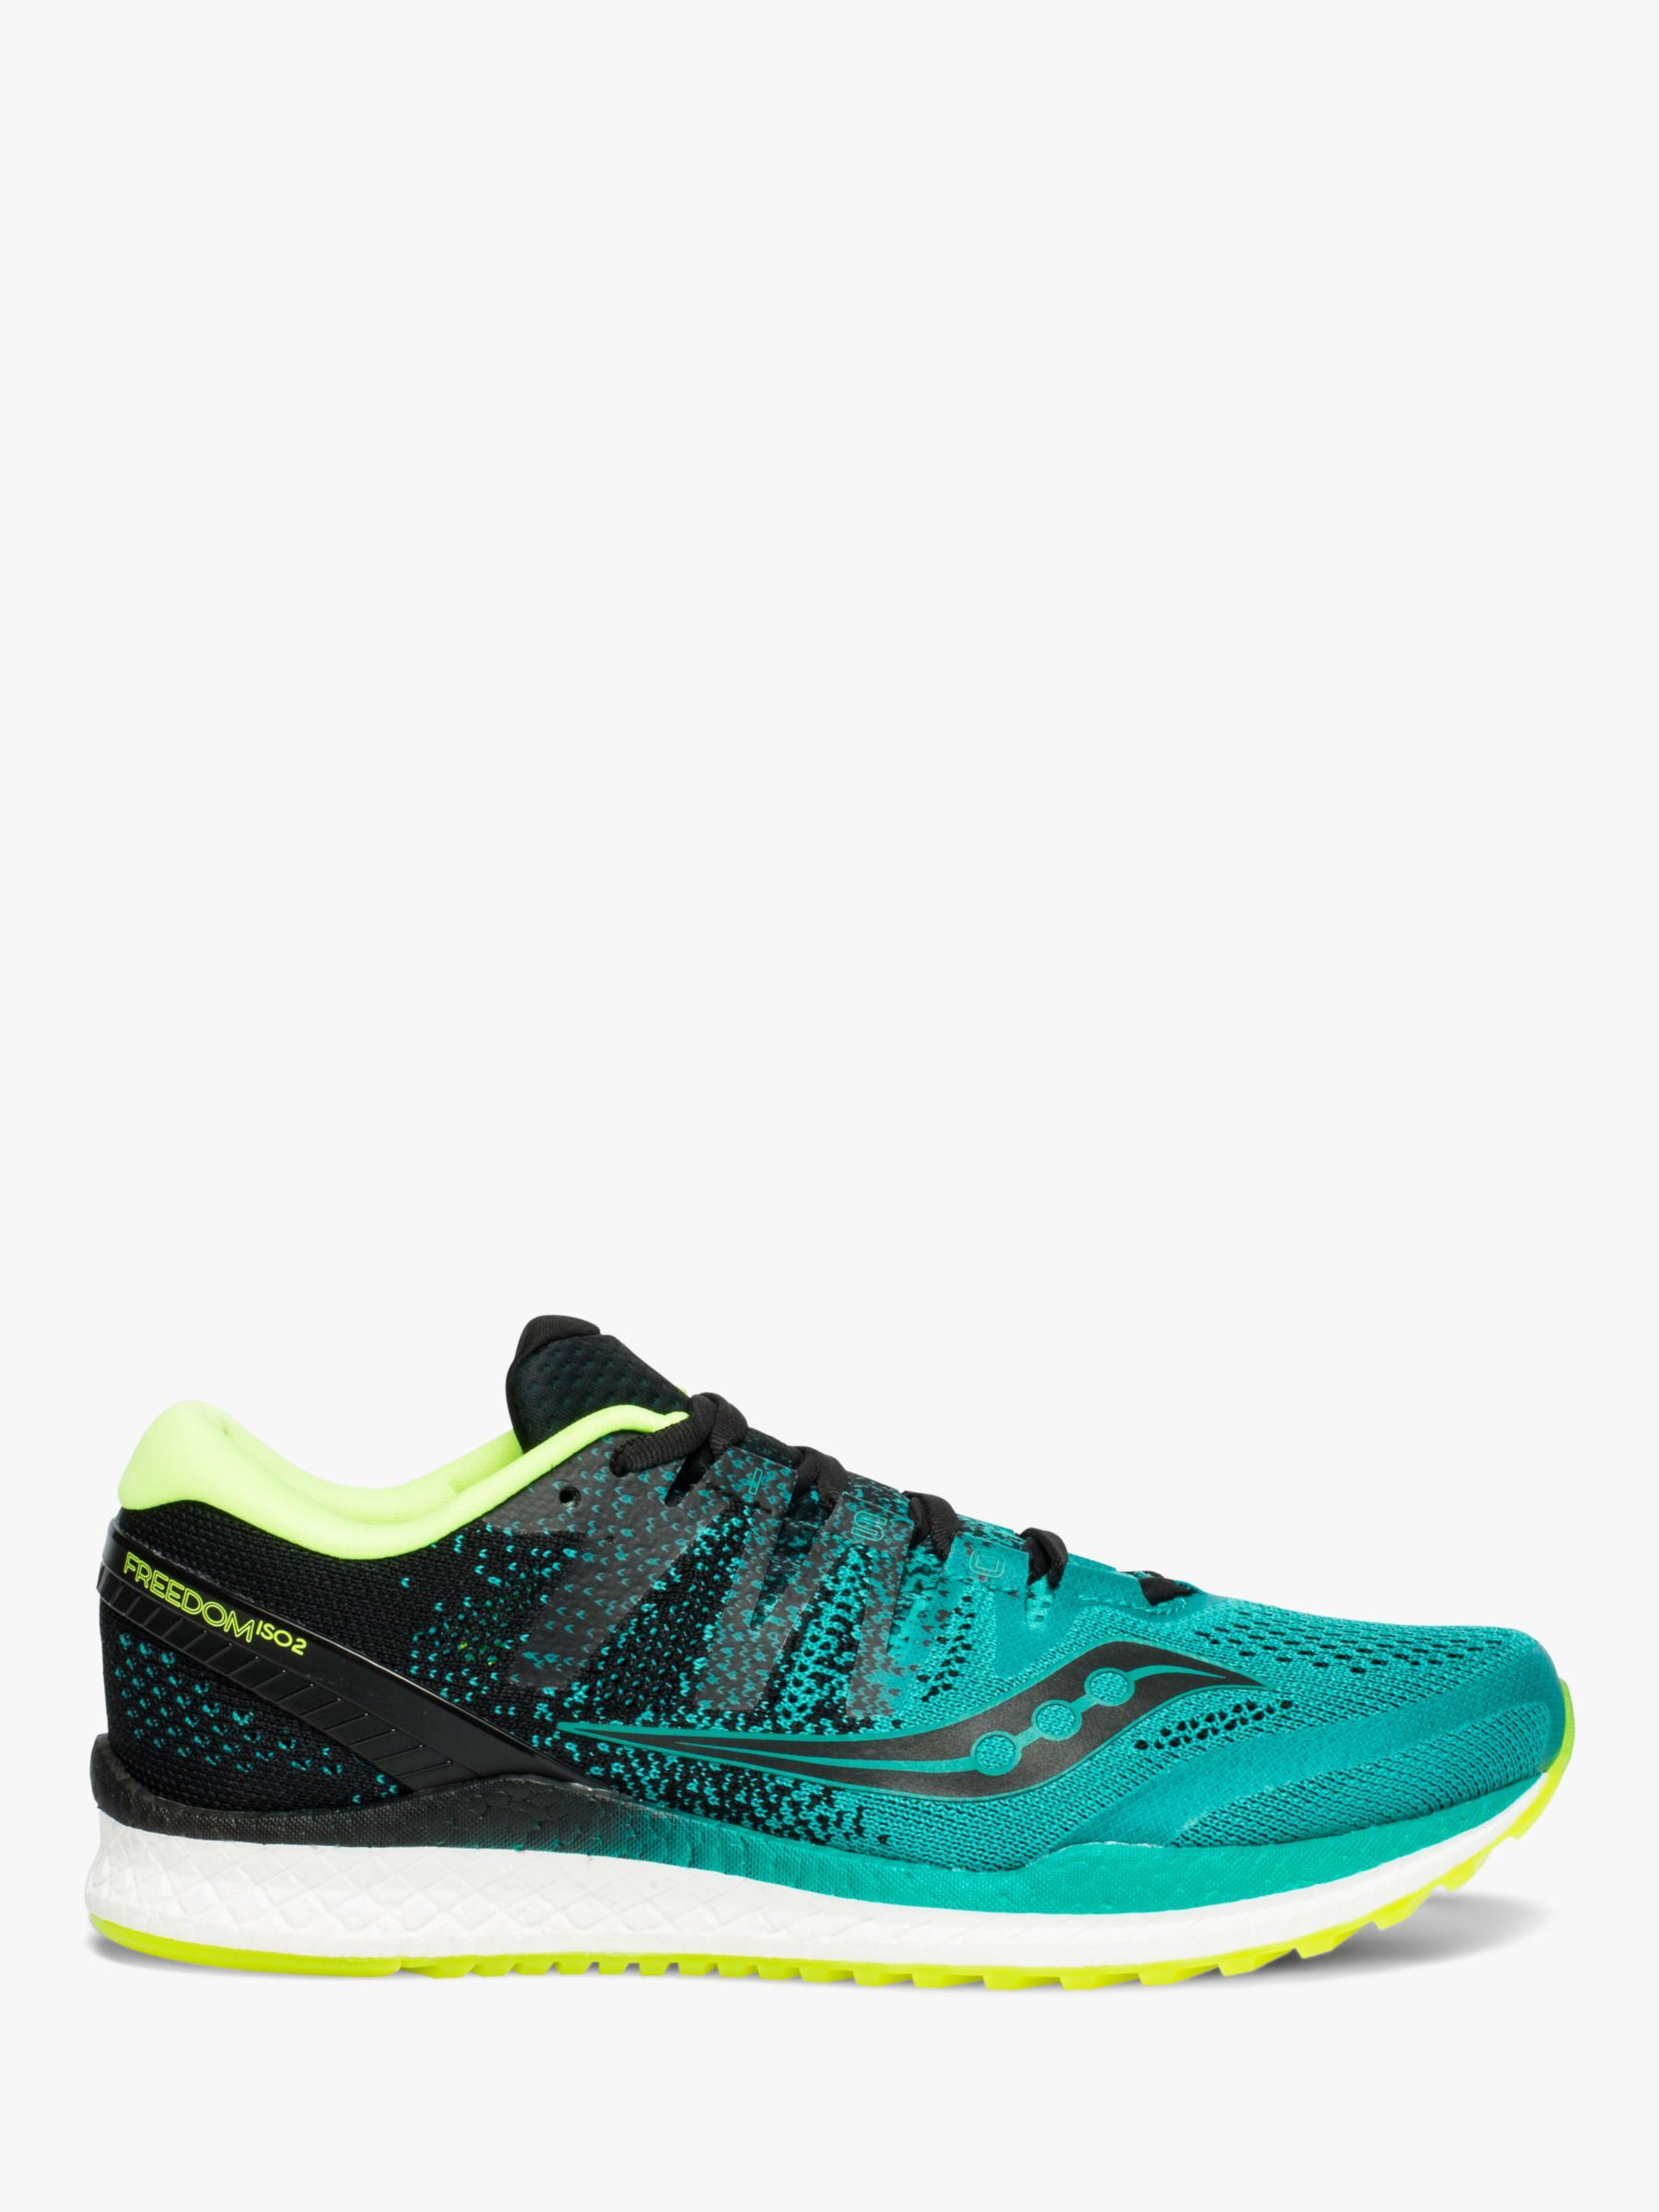 Saucony Saucony Freedom ISO 2 Men's Running Shoes, Teal/Black